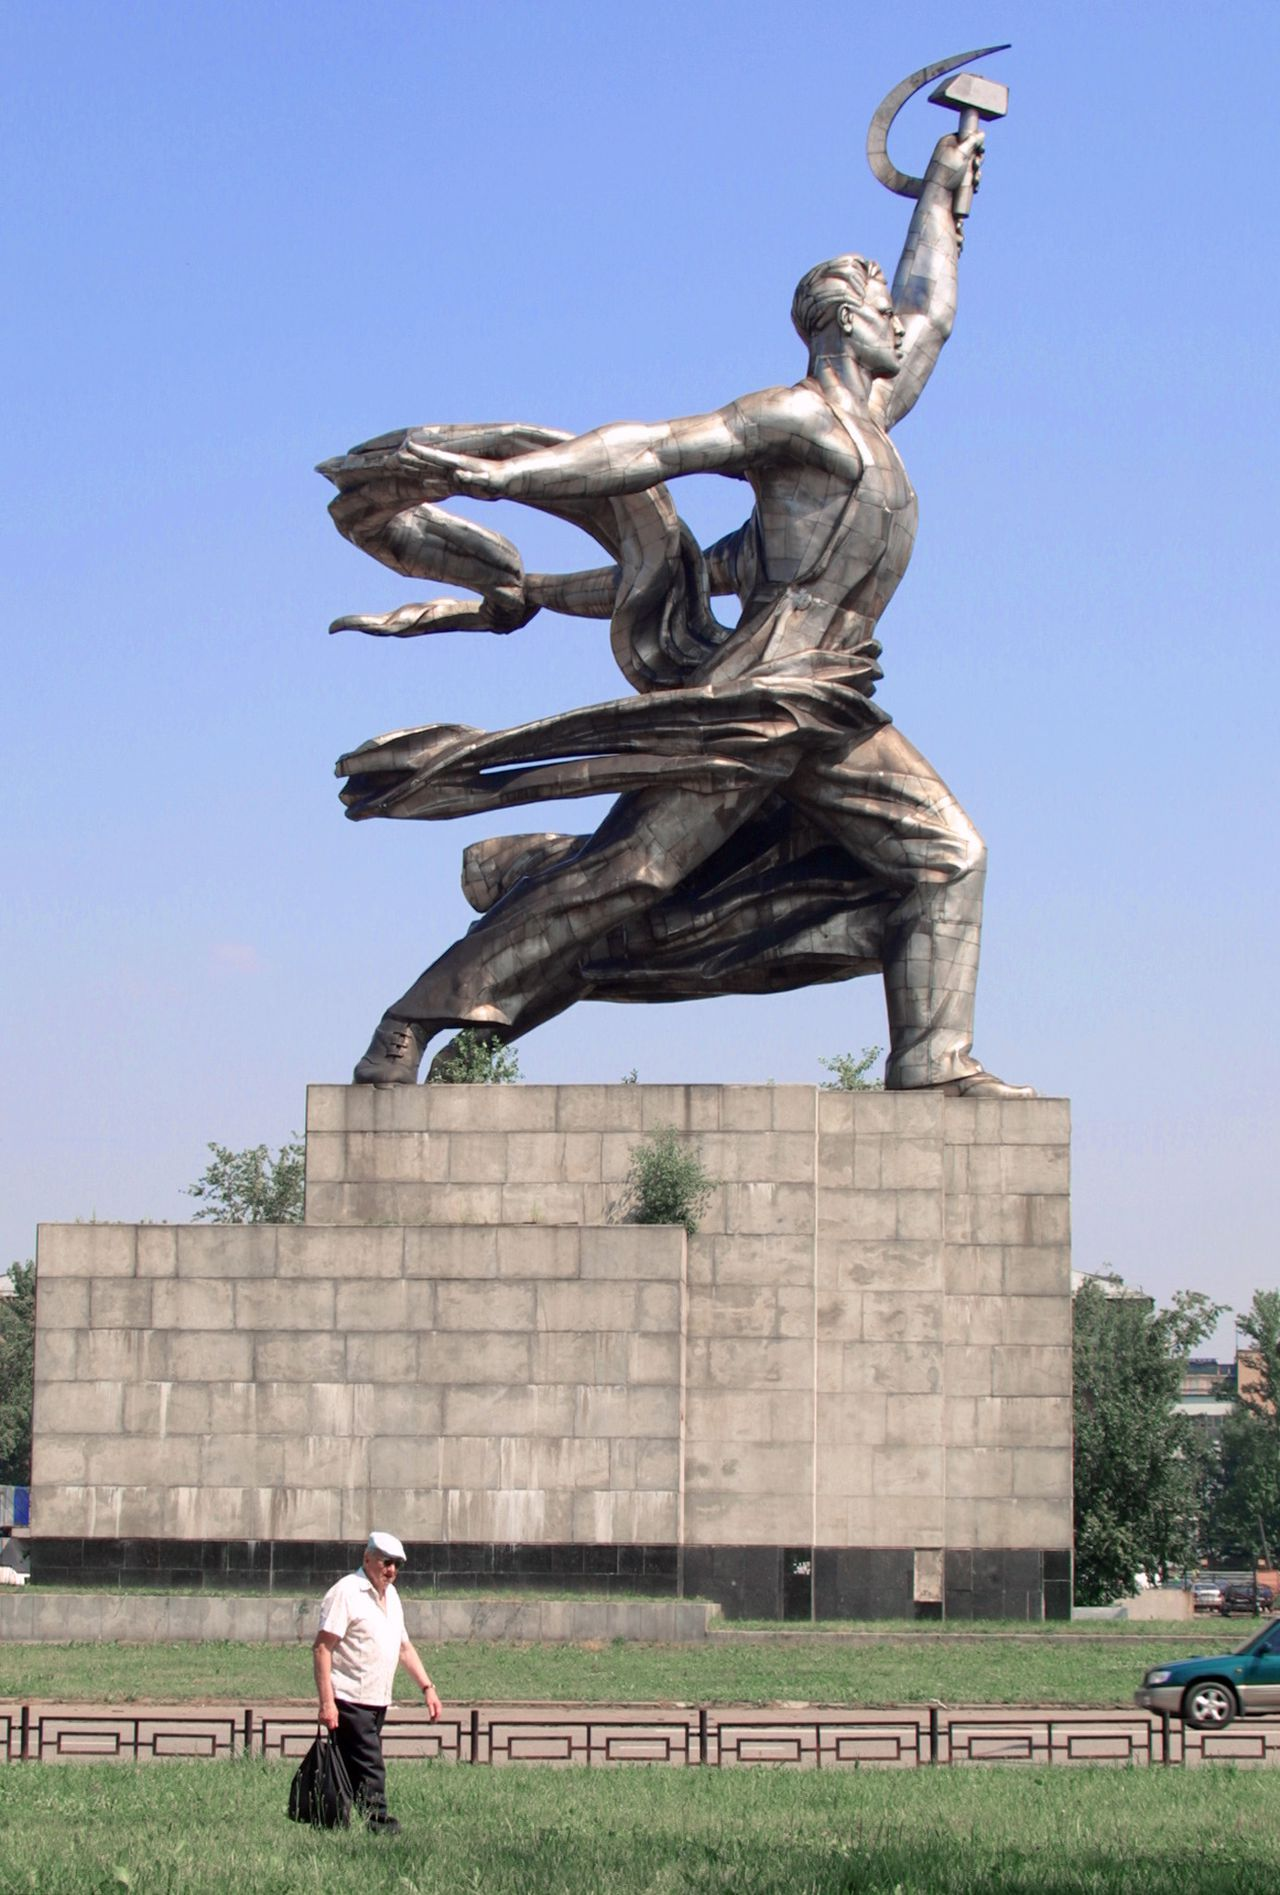 """The famous Soviet statue """"A Worker and a Female Collective Farmer"""" by Vera Mukhina, is pictured here in Moscow, 18 July 2001. This statue was created for the Agricultural Exhibition in Paris in 1937, and was mounted at the top of the Soviet pavilion. The sculpture group is considered to be a symbol of Soviet monumental art and socialist realizm, official, state-supported art trend in the Soviet Union."""